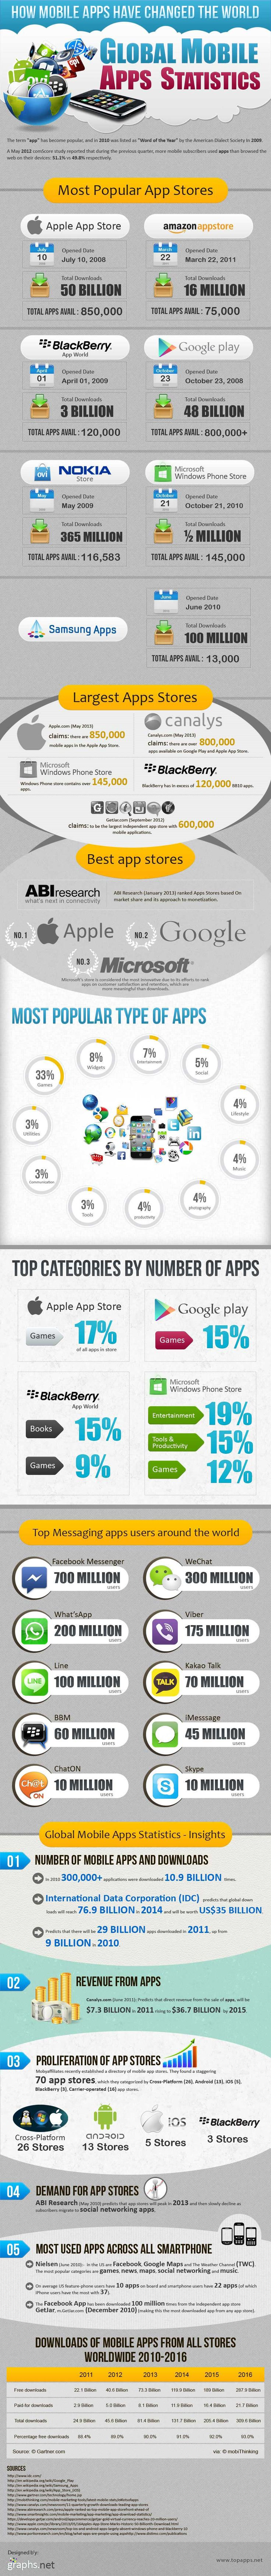 #INFOgraphic > App World Statistics: Apps have been around for almost 5 years. TopApps.net in collaboration with Graphs.net present an overview of the rapidly growing App industry featuring insights about App Stores popularity, ranking, size and revenue. Further insights regarding apps volume and popularity by type... > http://infographicsmania.com/app-world-statistics/